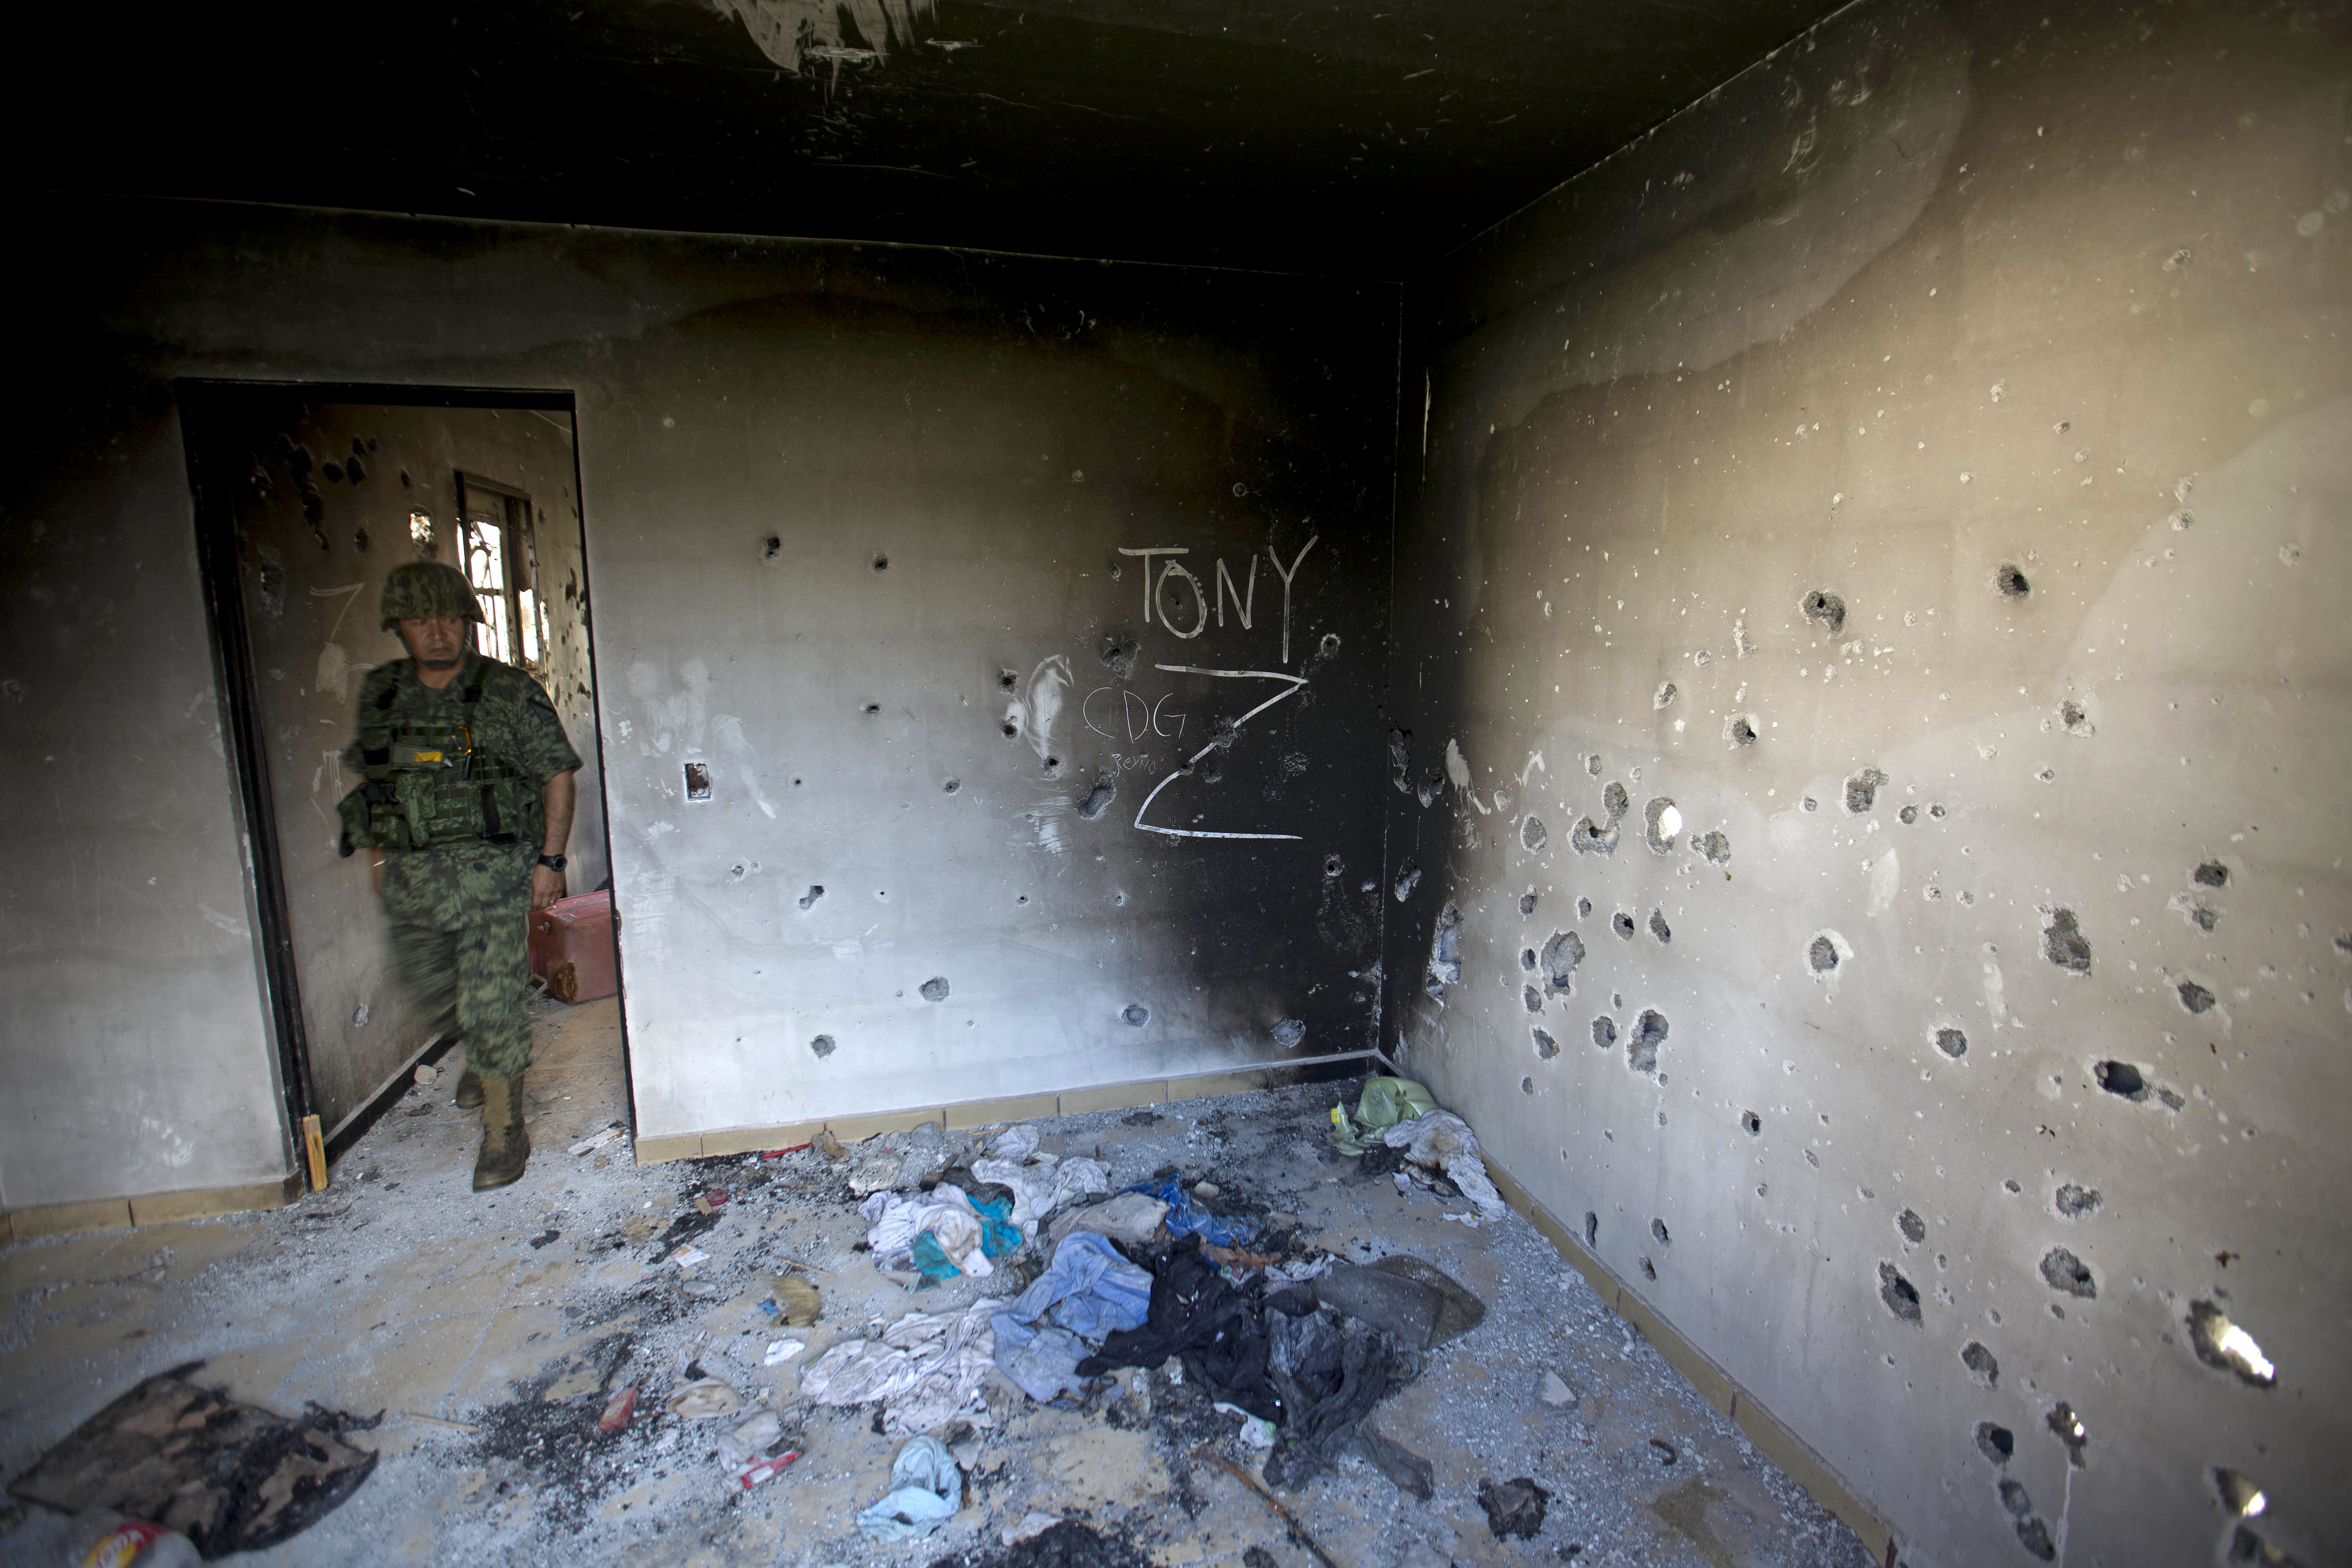 FILE - In this Sept. 6, 2014 file photo, a soldier enters a bullet-riddled home, tagged with the initials CDG for the Gulf Cartel, and Z for Zetas, in Ciudad Victoria, in Mexico's state of Tamaulipas. The country's war on drugs has changed the nature and map of Mexican cartels. One law enforcement official in the northern border state of Tamaulipas says he now routinely sees young cartel gunmen who not only have few regrets: they actually see killing as the best professional path they can take. (AP Photo/Eduardo Verdugo, File)